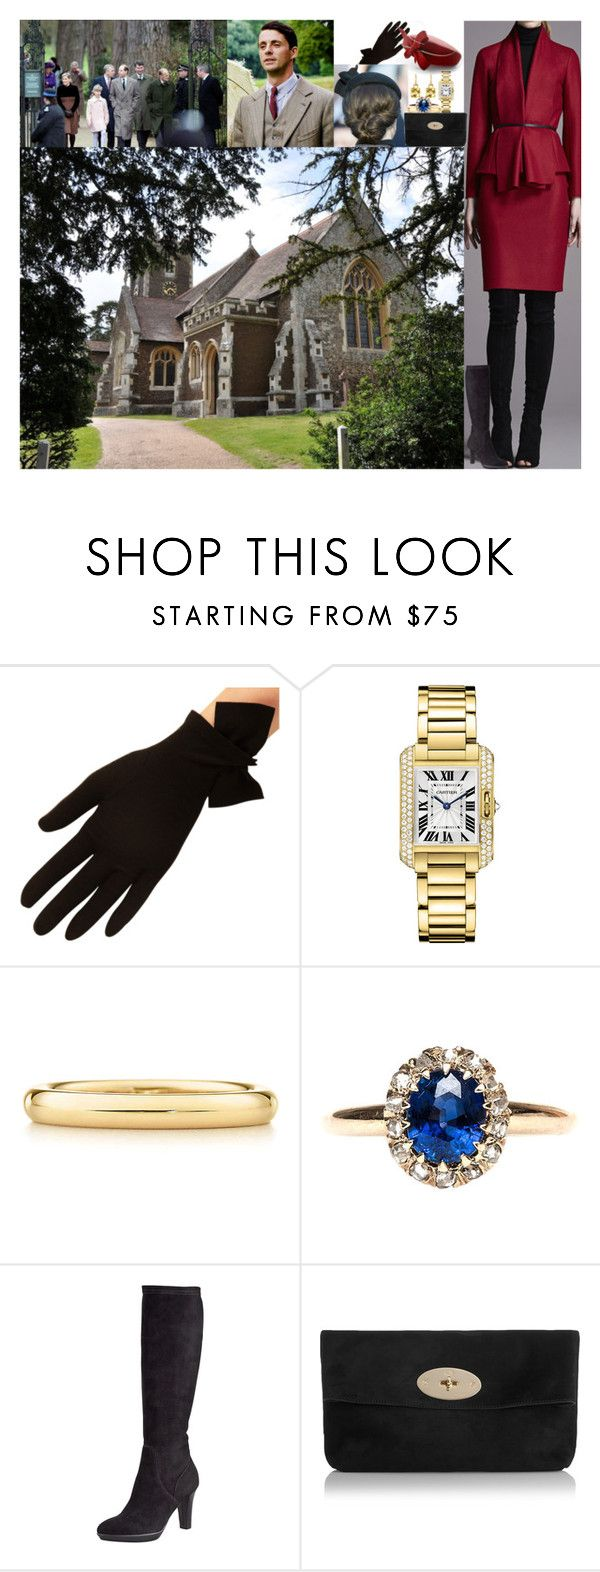 """""""Attending the Christmas Day service at St Mary Magdalene Church"""" by lady-maud ❤ liked on Polyvore featuring Cartier, Elsa Peretti, Aquatalia by Marvin K., Mulberry and Kiki mcdonough"""